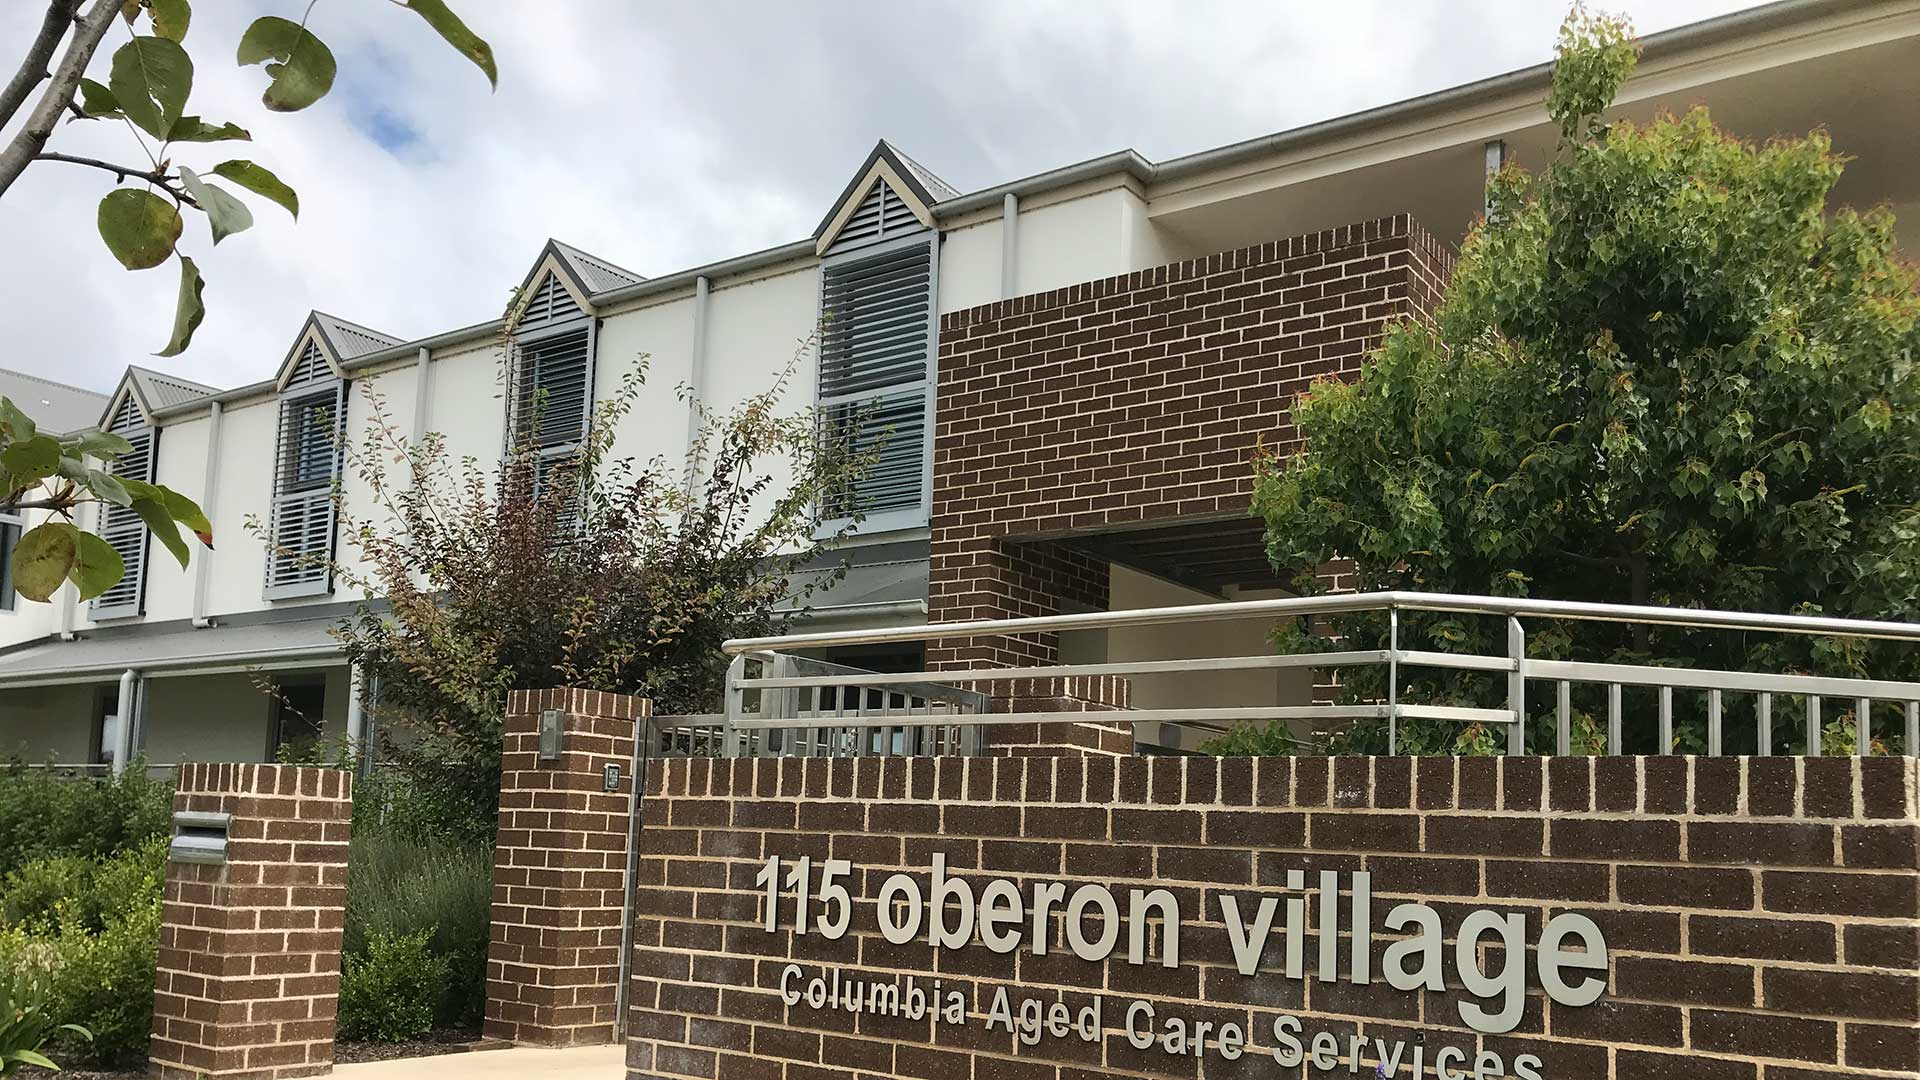 Living - Oberon Village, Columbia Aged Care Services | Visit Oberon